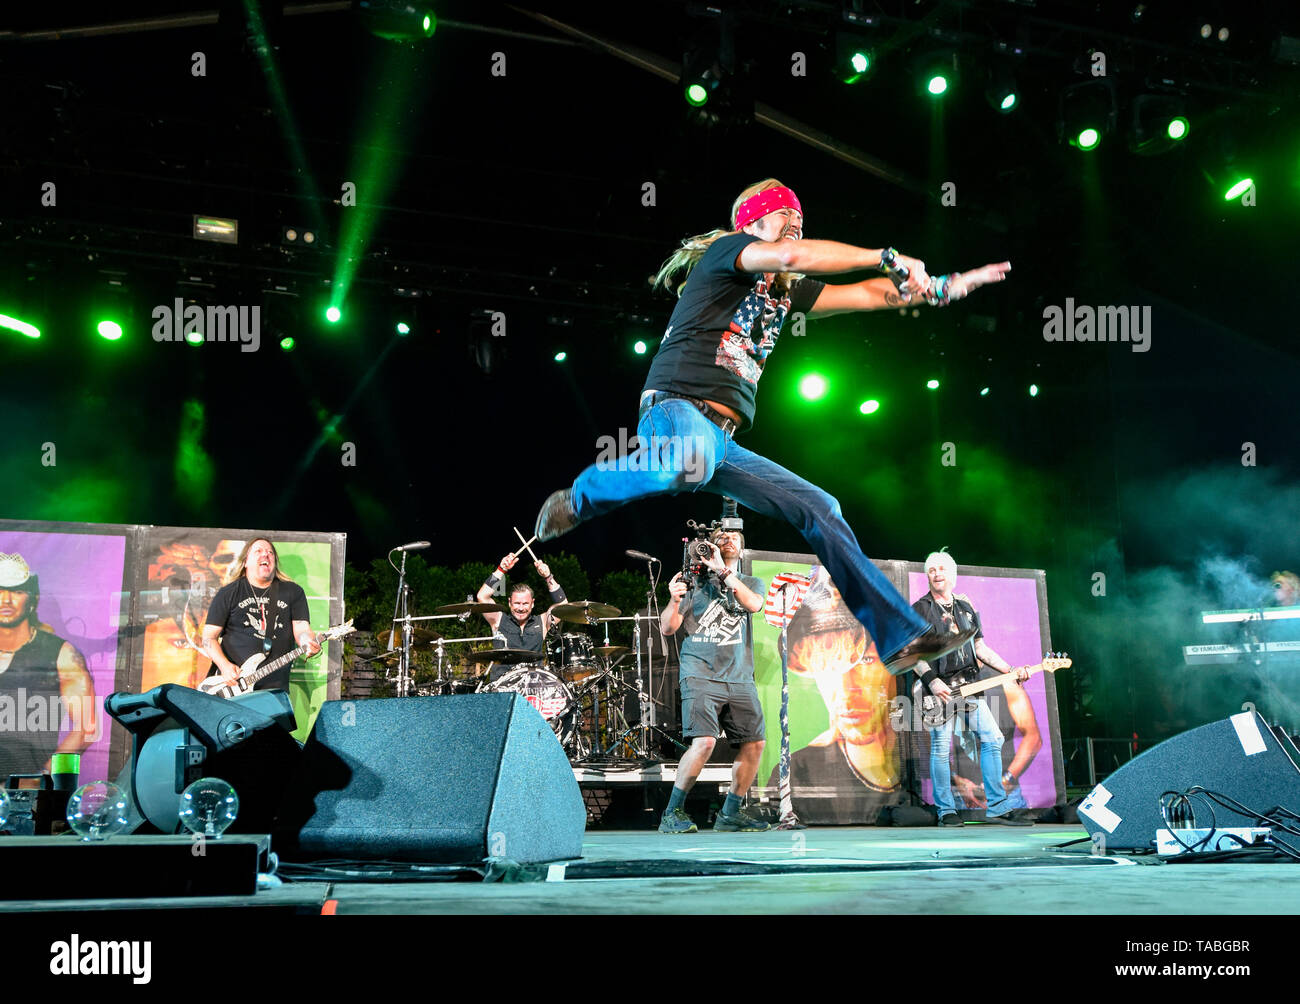 Indio, California, April 26, 2019, Bret Michaels Band on stage performing to an energetic crowd on day 1 of the Stagecoach Country Music Festival. Stock Photo